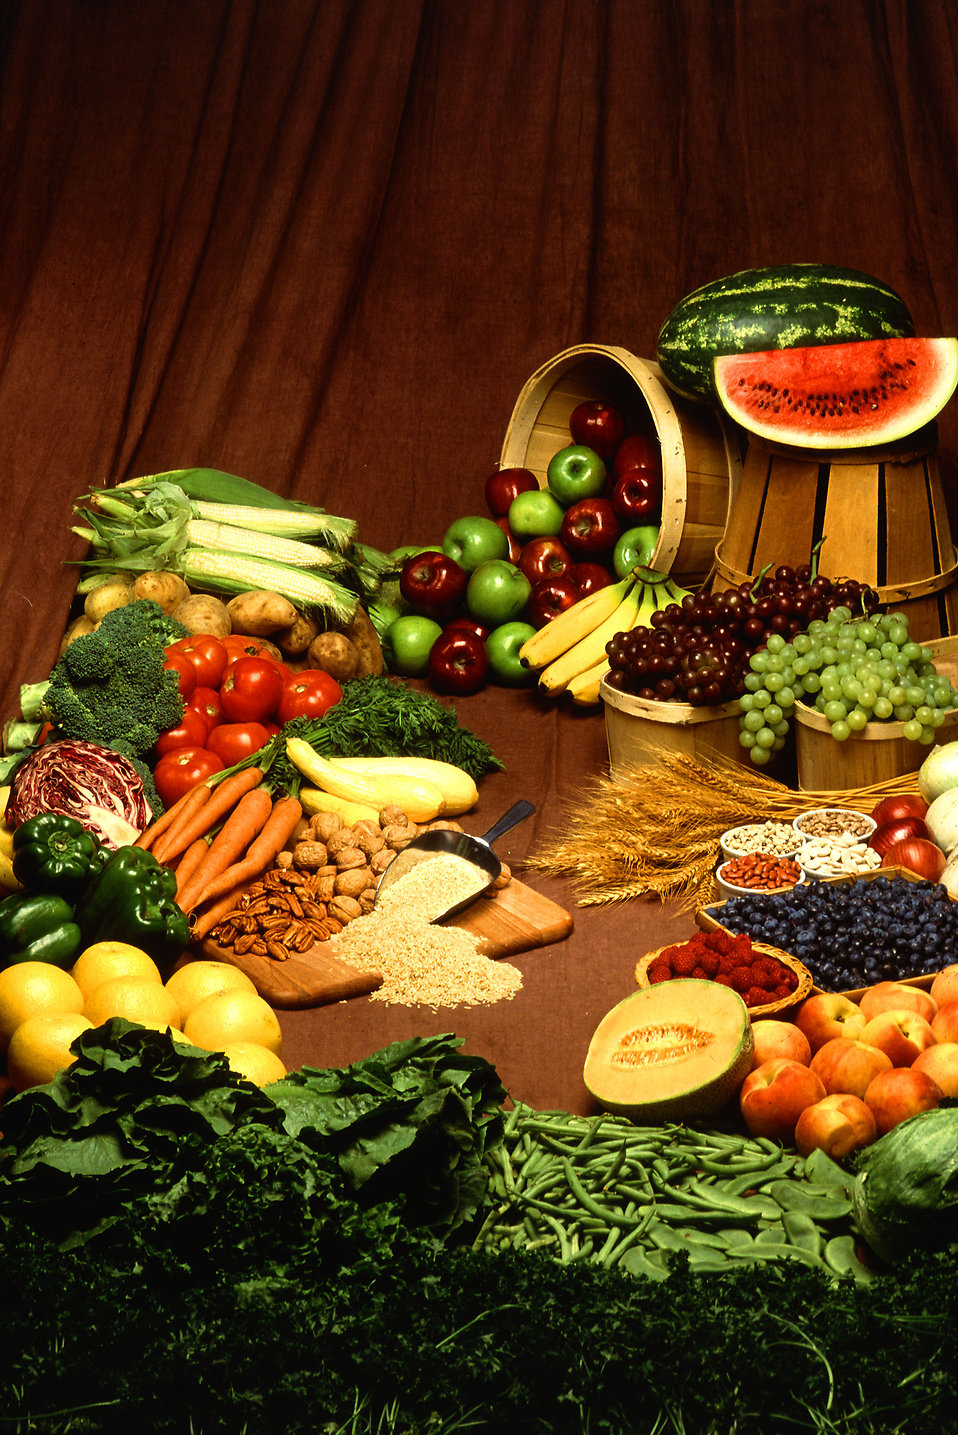 a spread of fruits, vegetables, grains and nuts